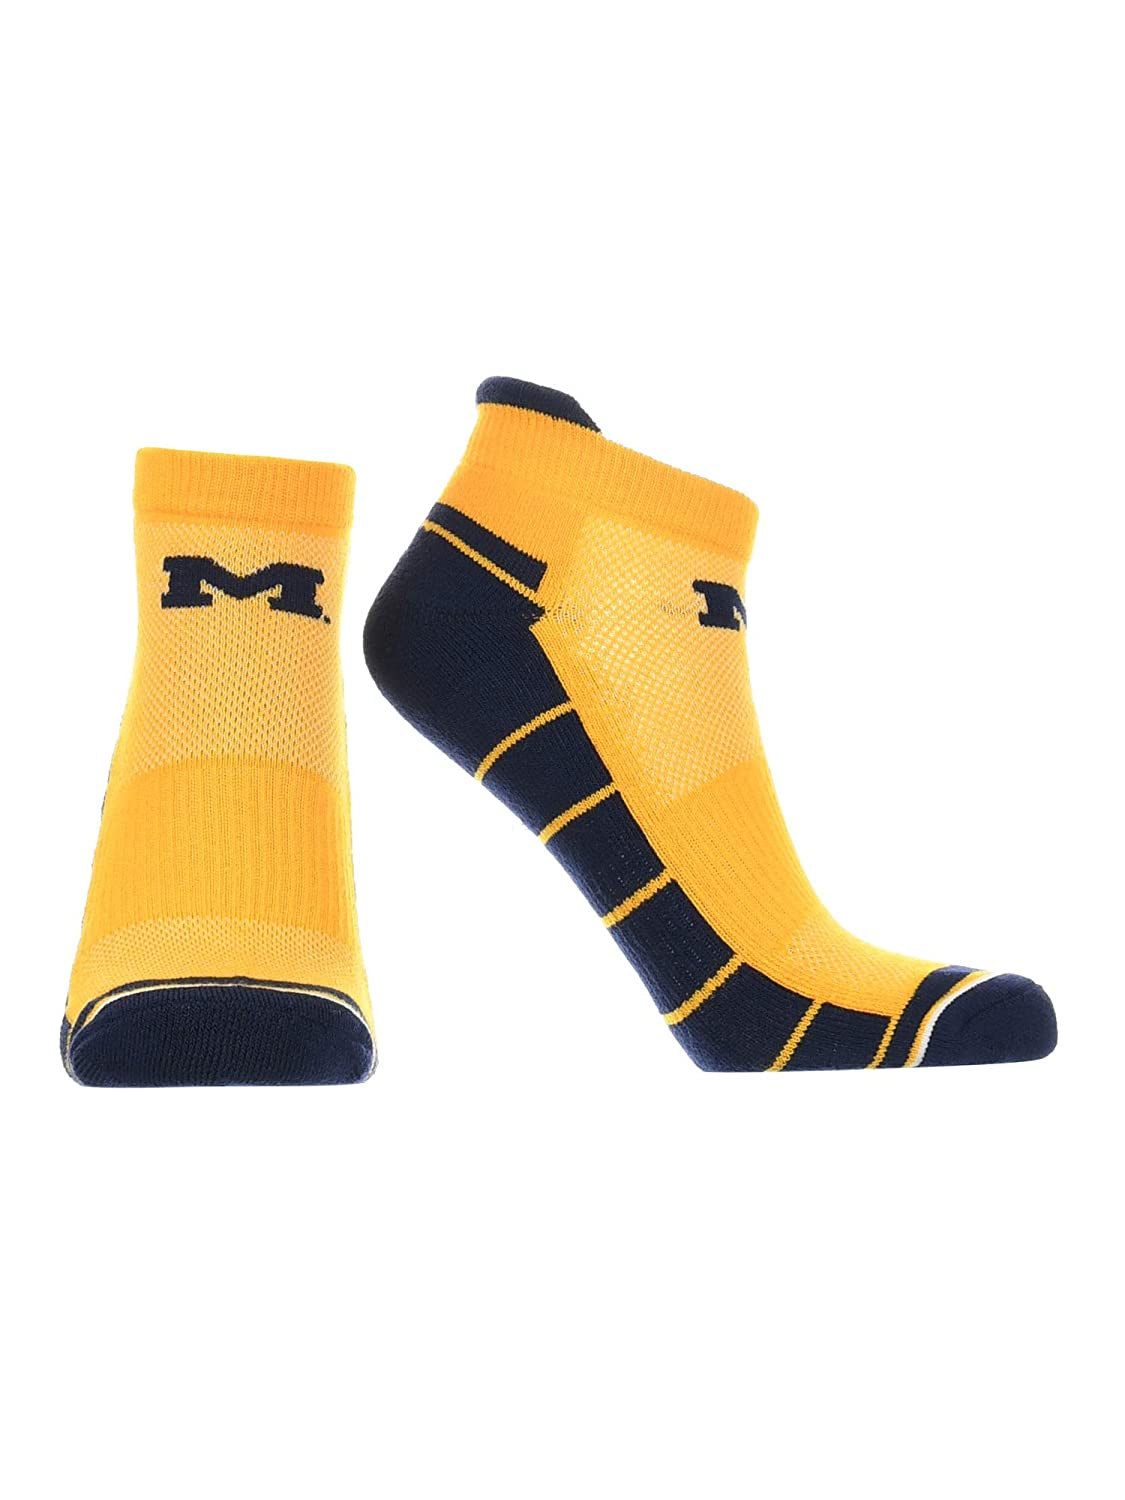 Michigan Wolverines Low Cut Ankle Socks with Tab